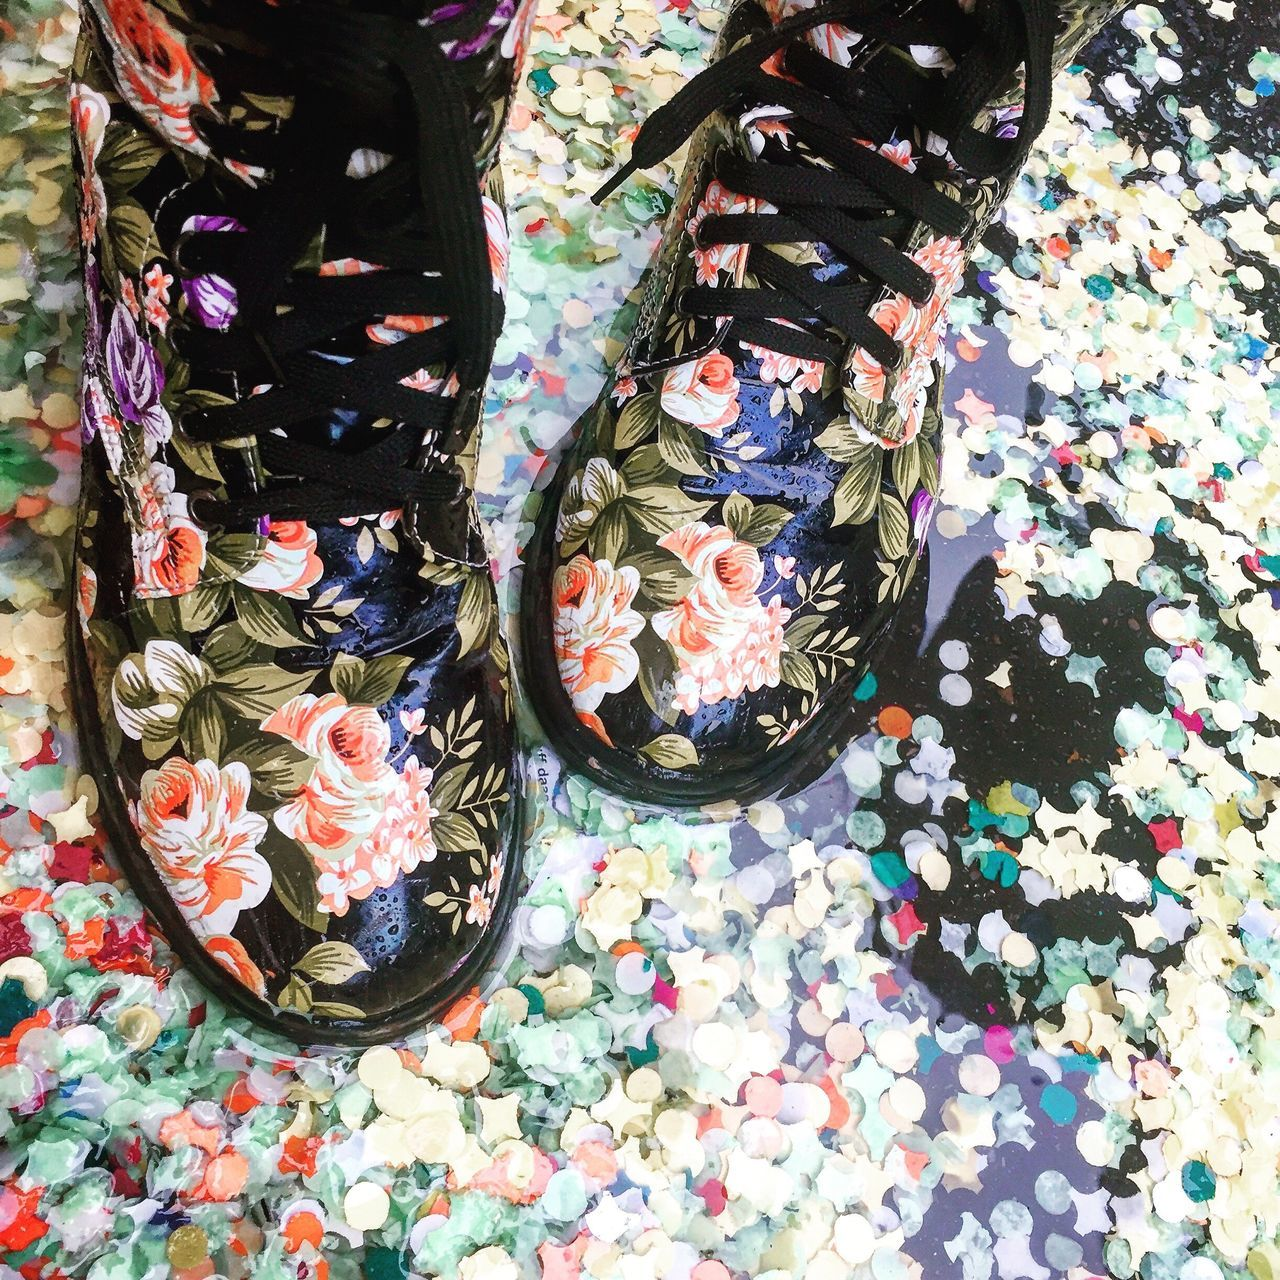 Multi Colored Close-up Shoeselfie Basler Fasnacht Rainy Days Hide And Seek Outdoors EyEmNewHere